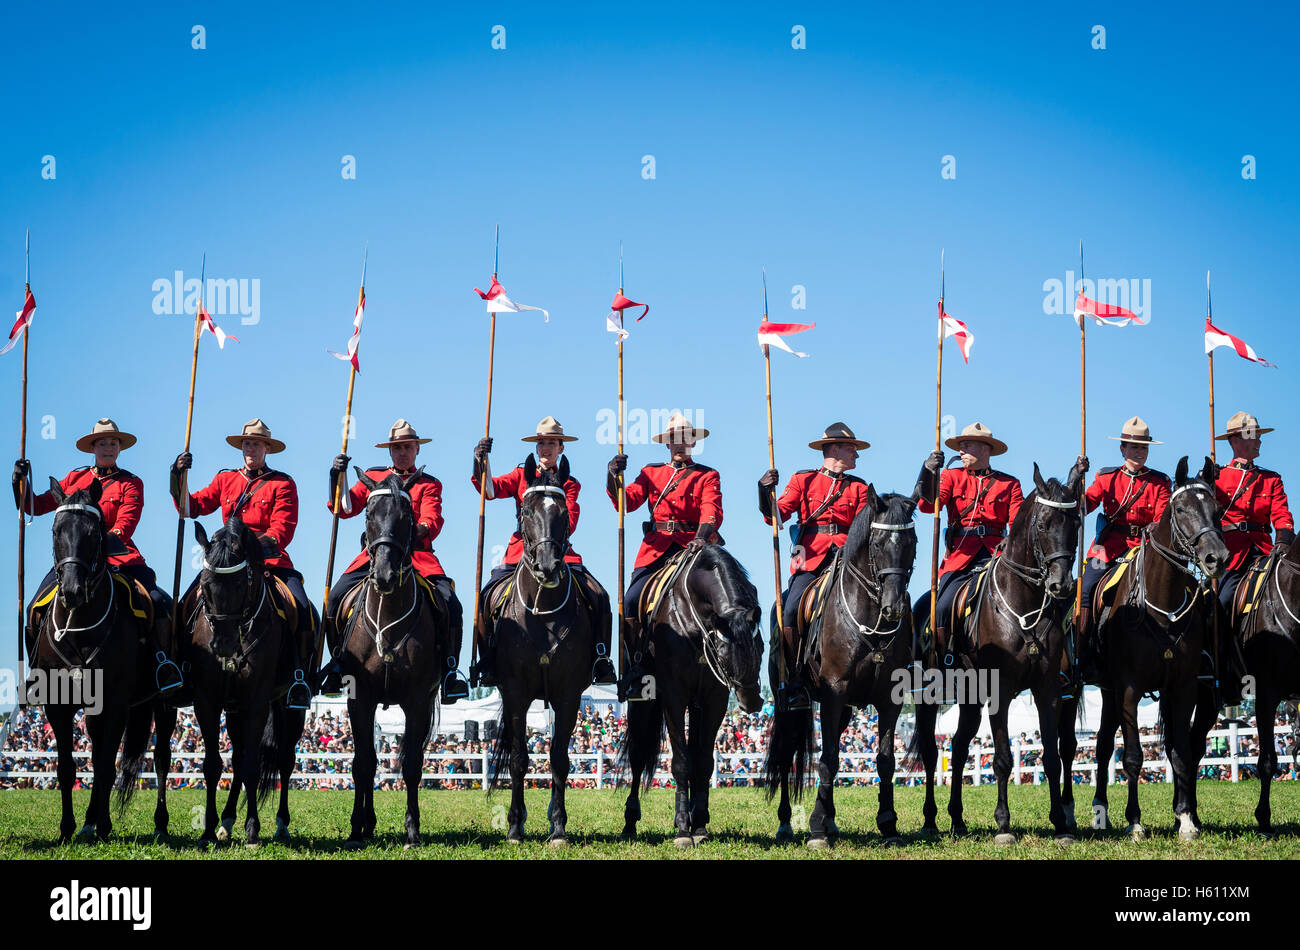 Royal Canadian Mounted Police at the International Plowing Match and Rural Expo in Minto, Ontario Canada - Stock Image